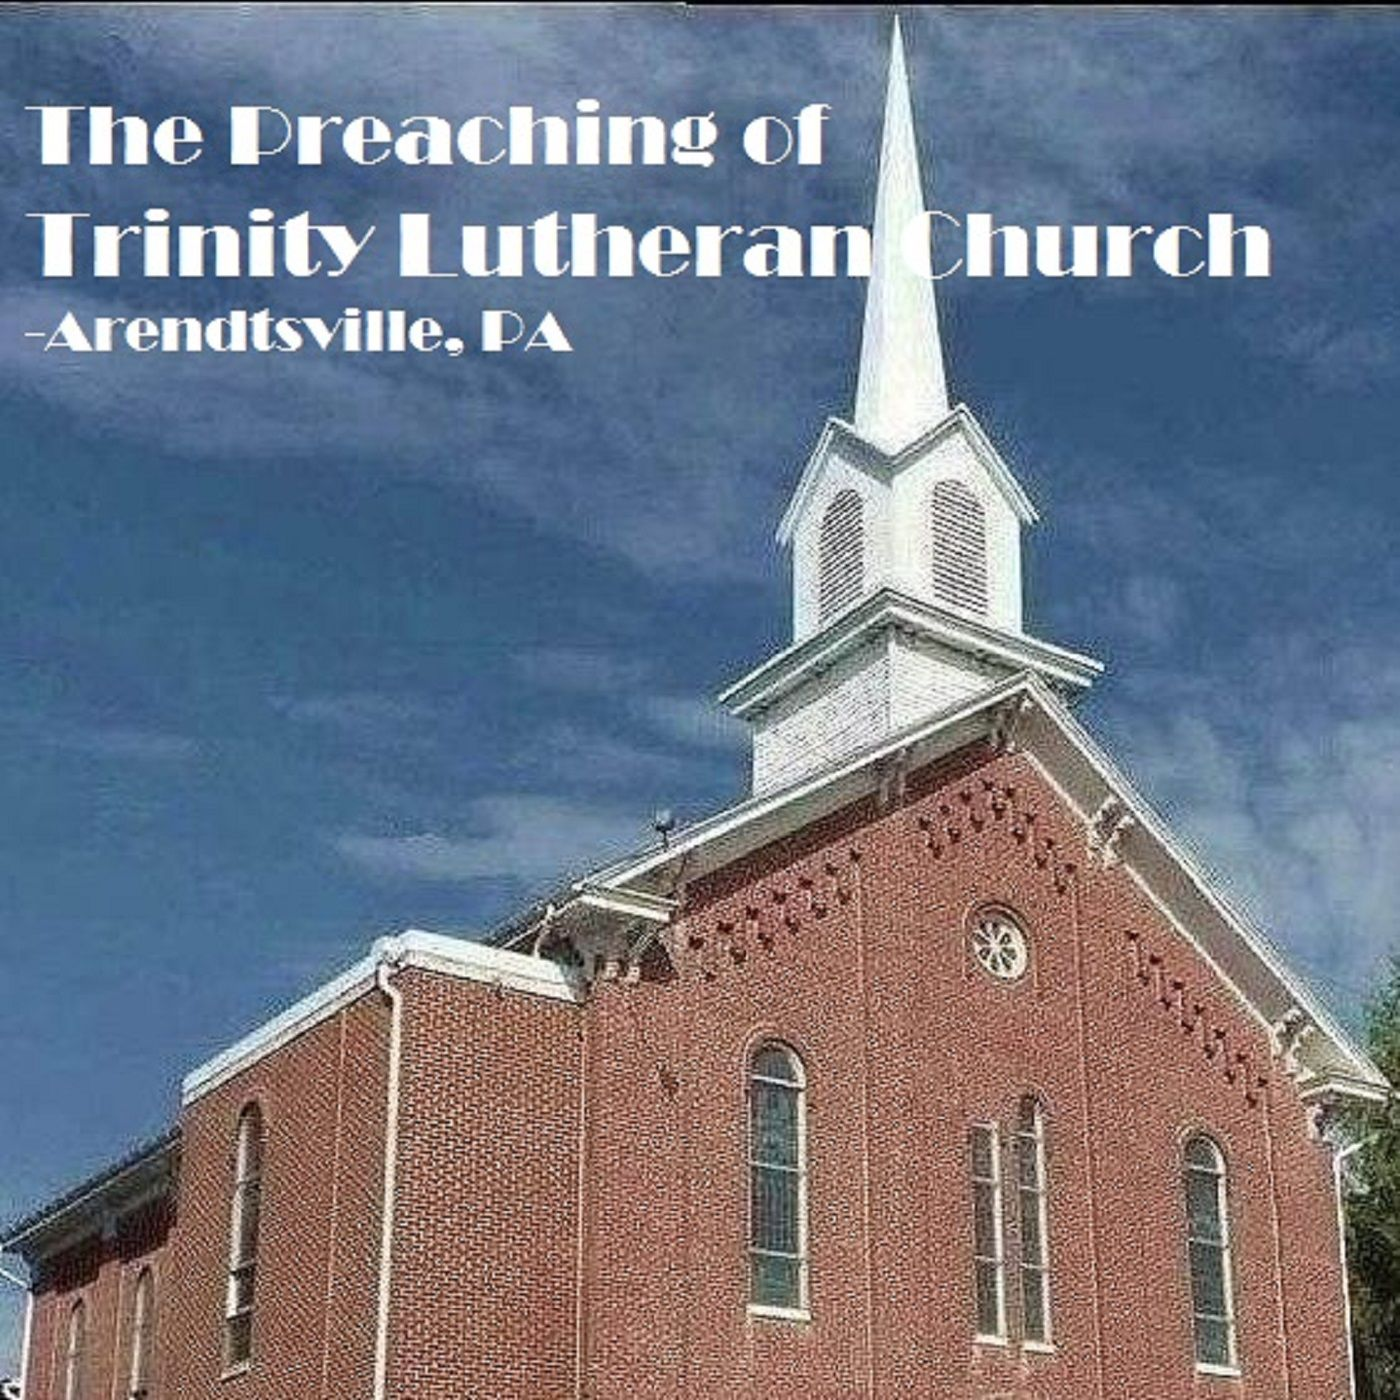 Trinity Lutheran Church; Arendtsville, PA